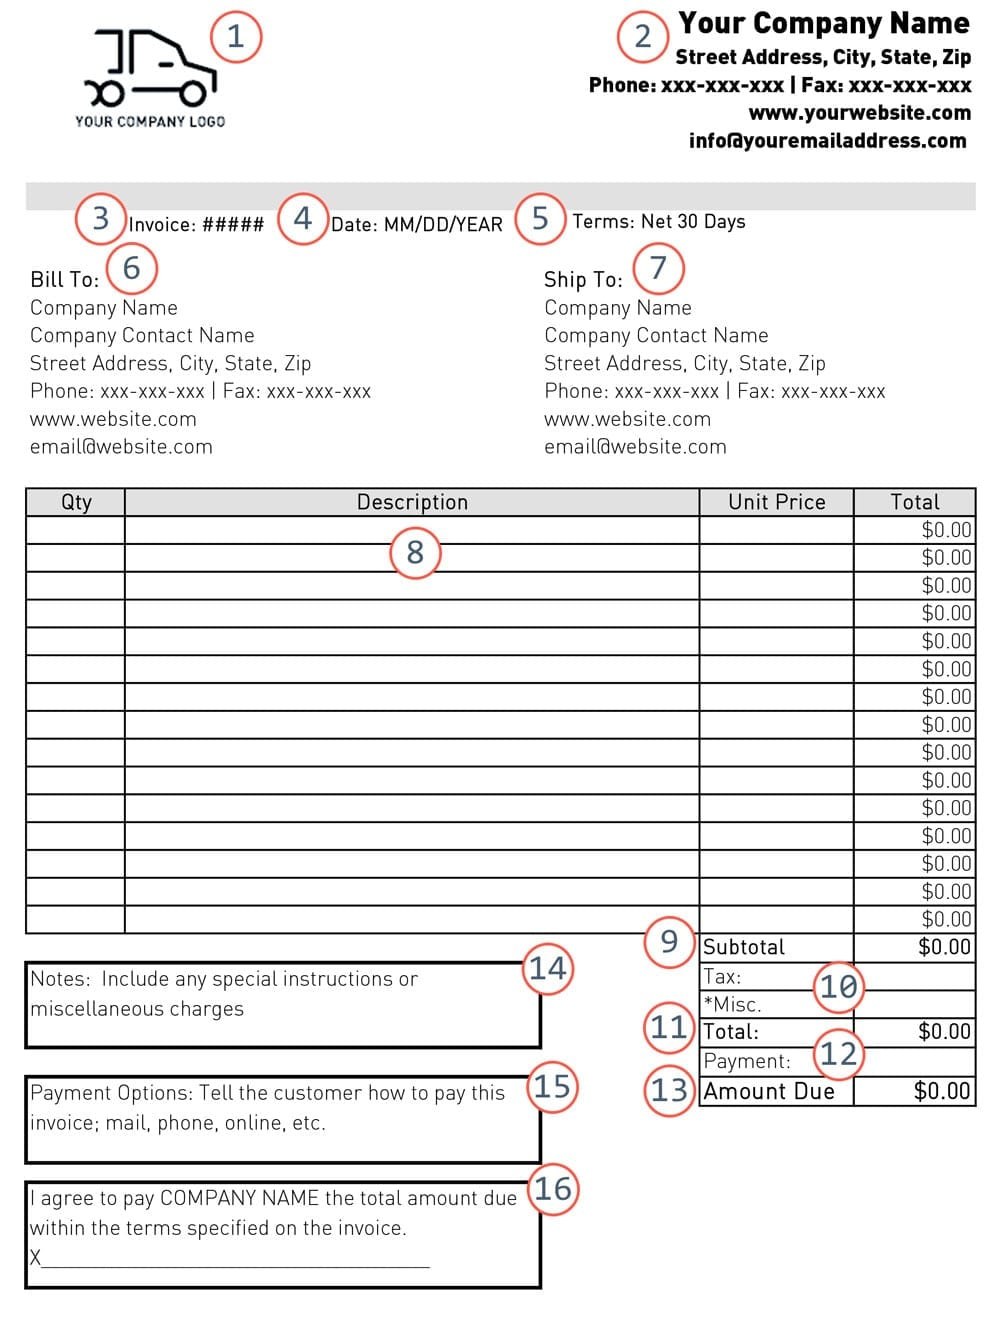 Proatmealus  Pretty Invoice Templte Invoice Template Free Dental Invoice Template  With Fair Shipping Invoice Template Download  Tci Business Capital  Invoice Templte With Amazing Pesto Receipt Also Free Receipt Template Pdf In Addition How Long To Keep Bills And Receipts And Pulled Pork Receipt As Well As Us Visa Fee Receipt Additionally Epson Tmtiv Receipt Printer From Happytomco With Proatmealus  Fair Invoice Templte Invoice Template Free Dental Invoice Template  With Amazing Shipping Invoice Template Download  Tci Business Capital  Invoice Templte And Pretty Pesto Receipt Also Free Receipt Template Pdf In Addition How Long To Keep Bills And Receipts From Happytomco